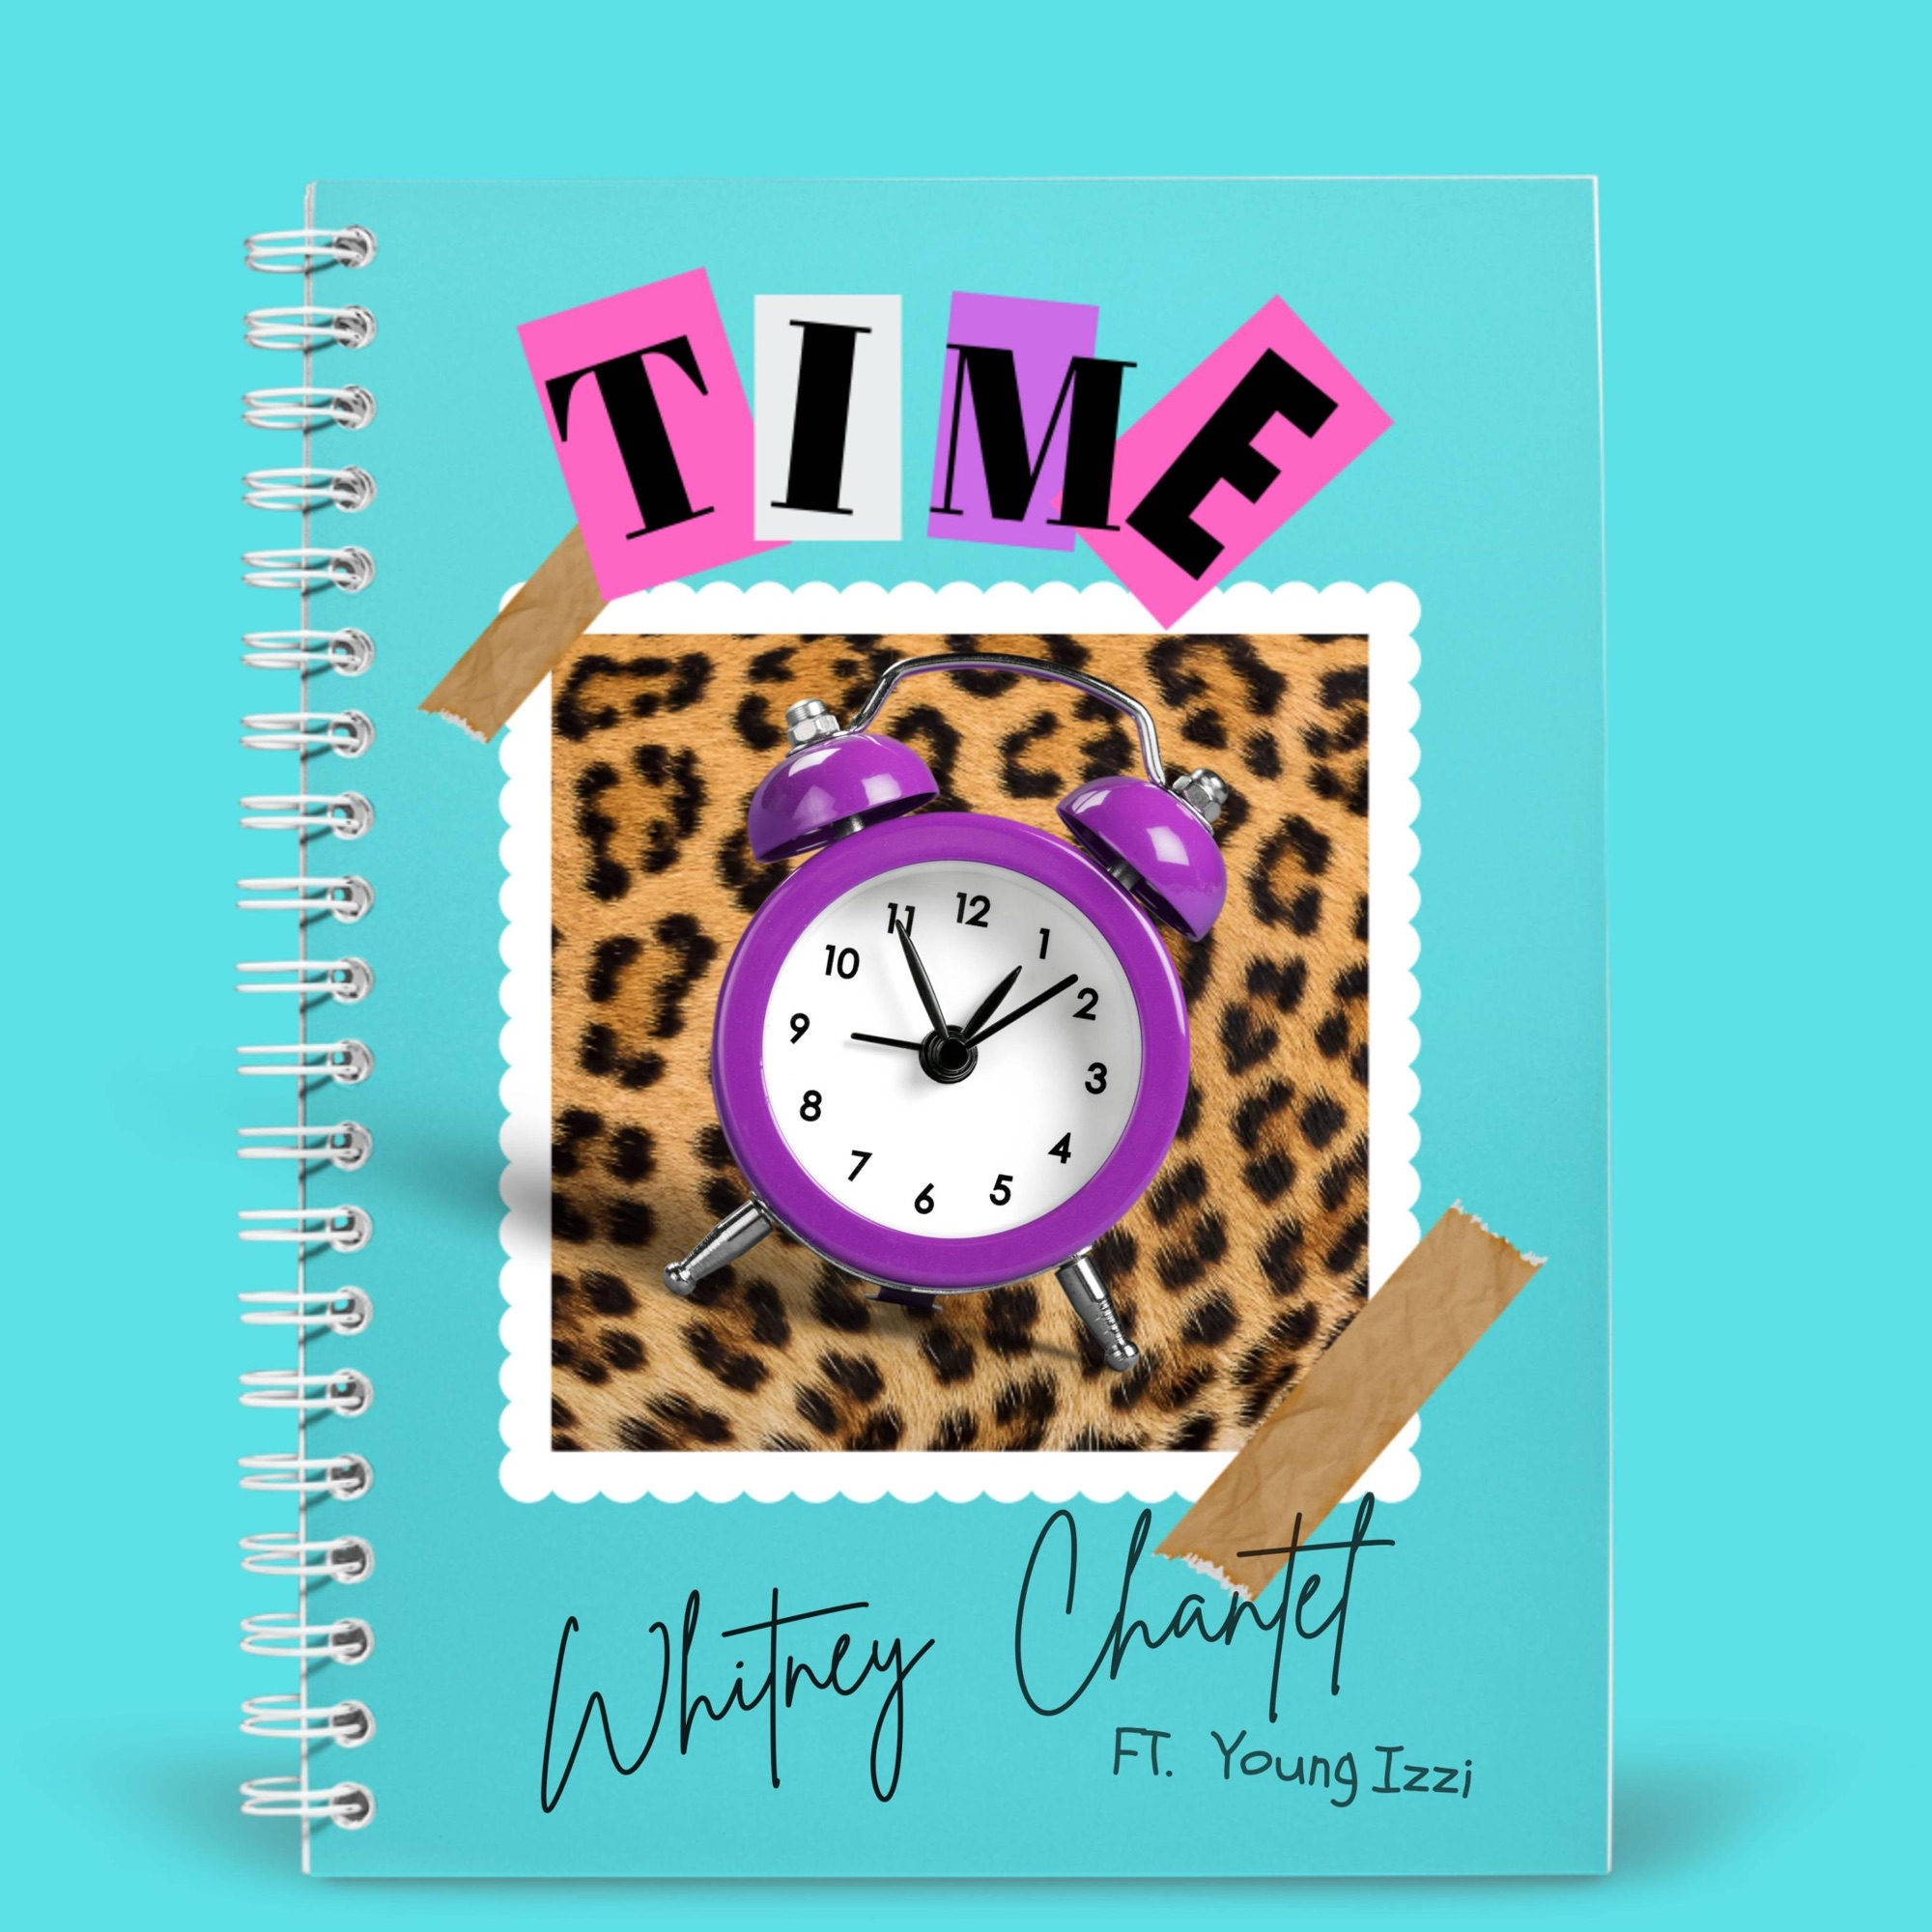 Art for Time (feat. Young Izzi) by Whitney Chantel